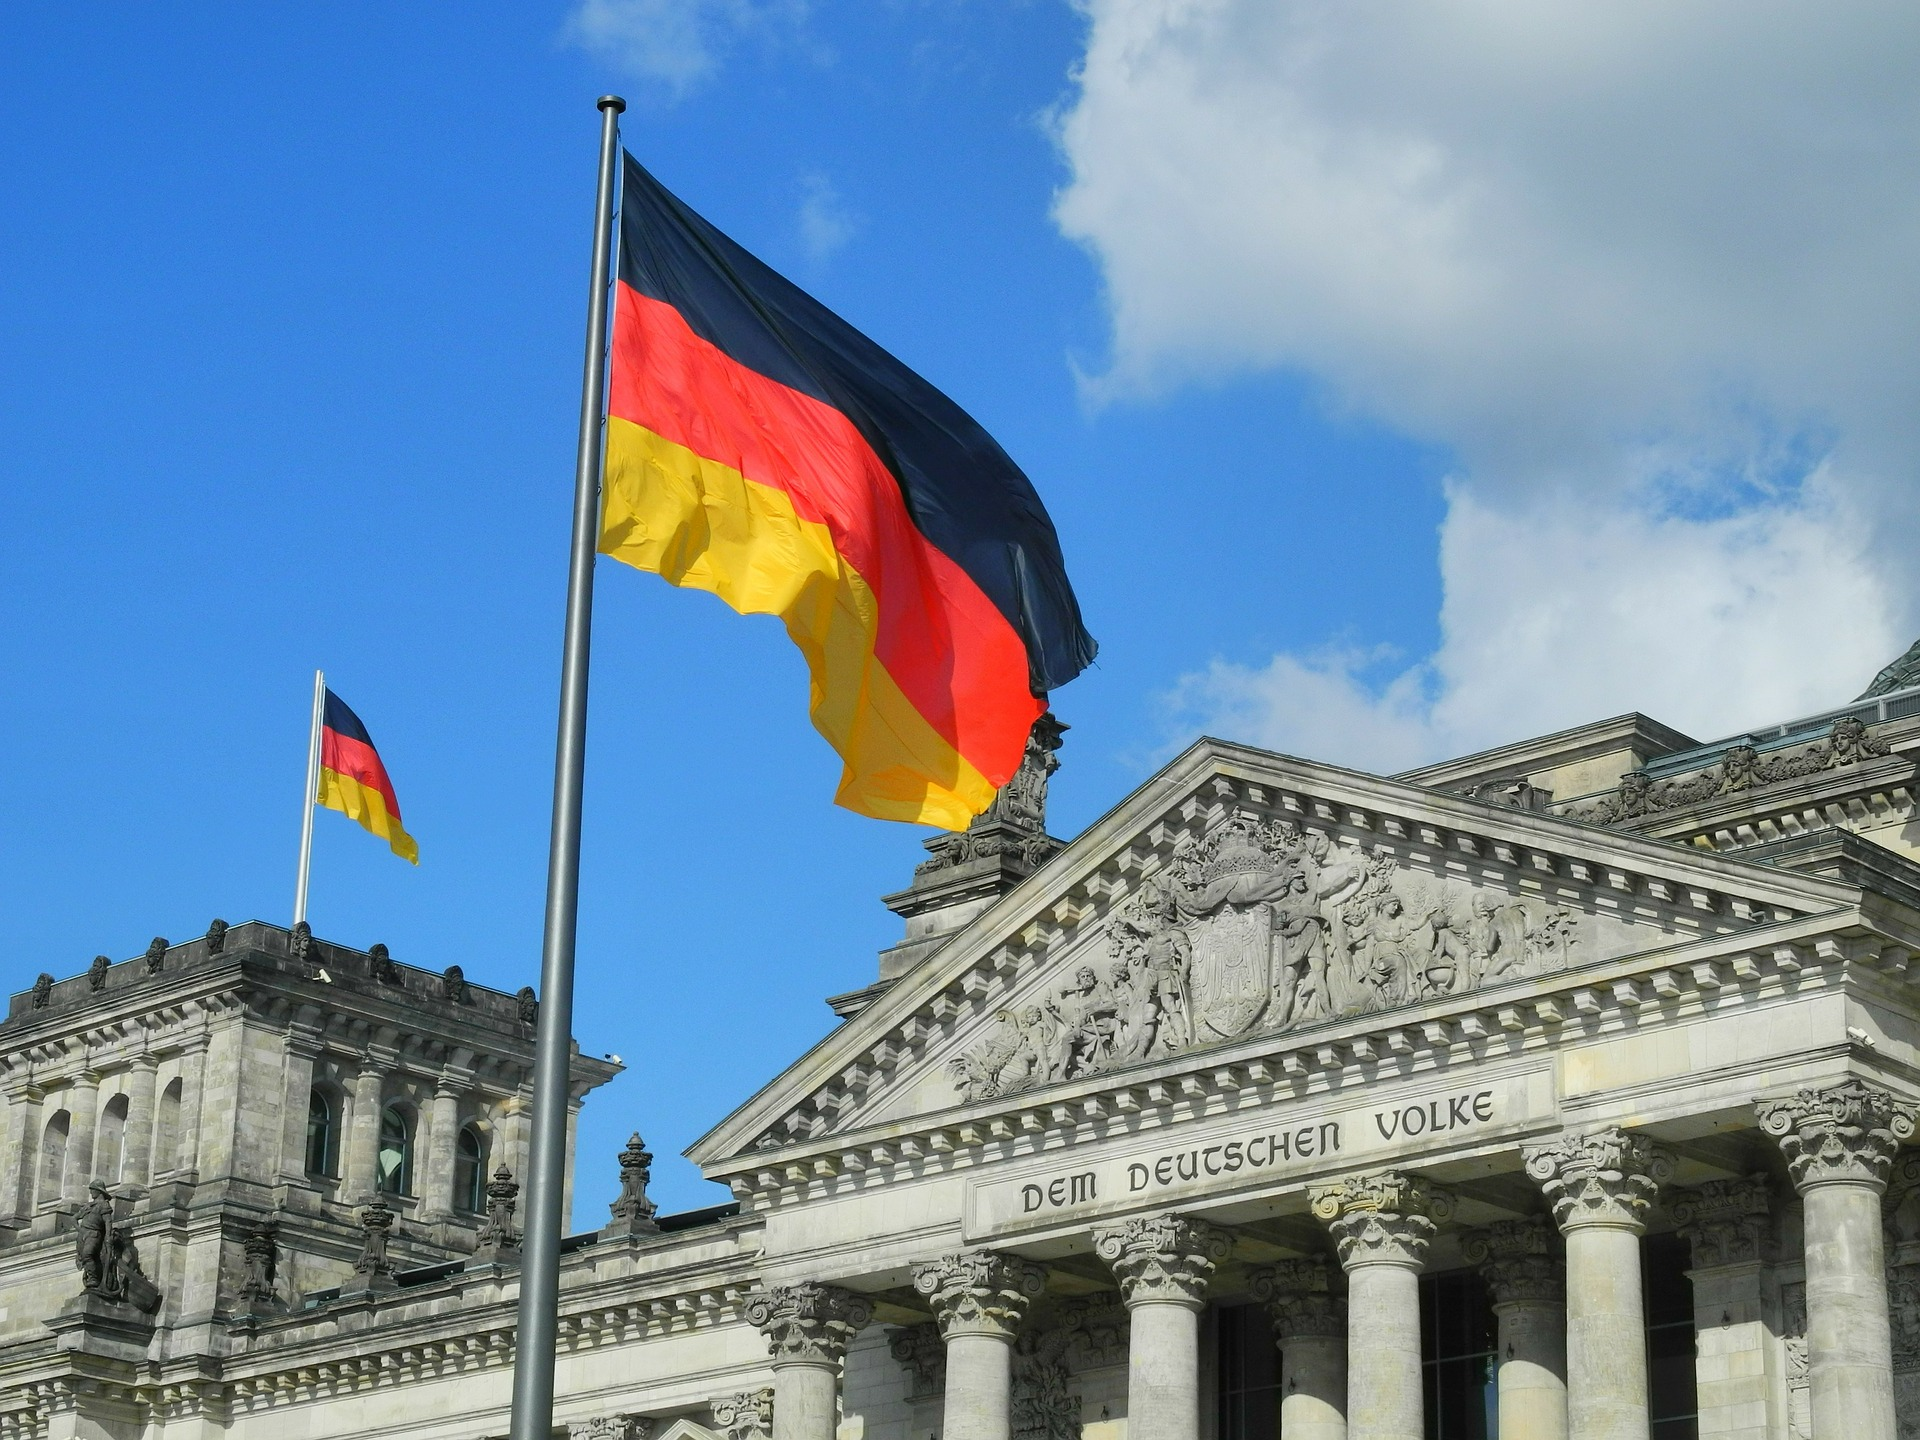 bandiera tedesca https://pixabay.com/it/reichstag-il-volke-tedesco-germania-324982/ ©karlherl CC0